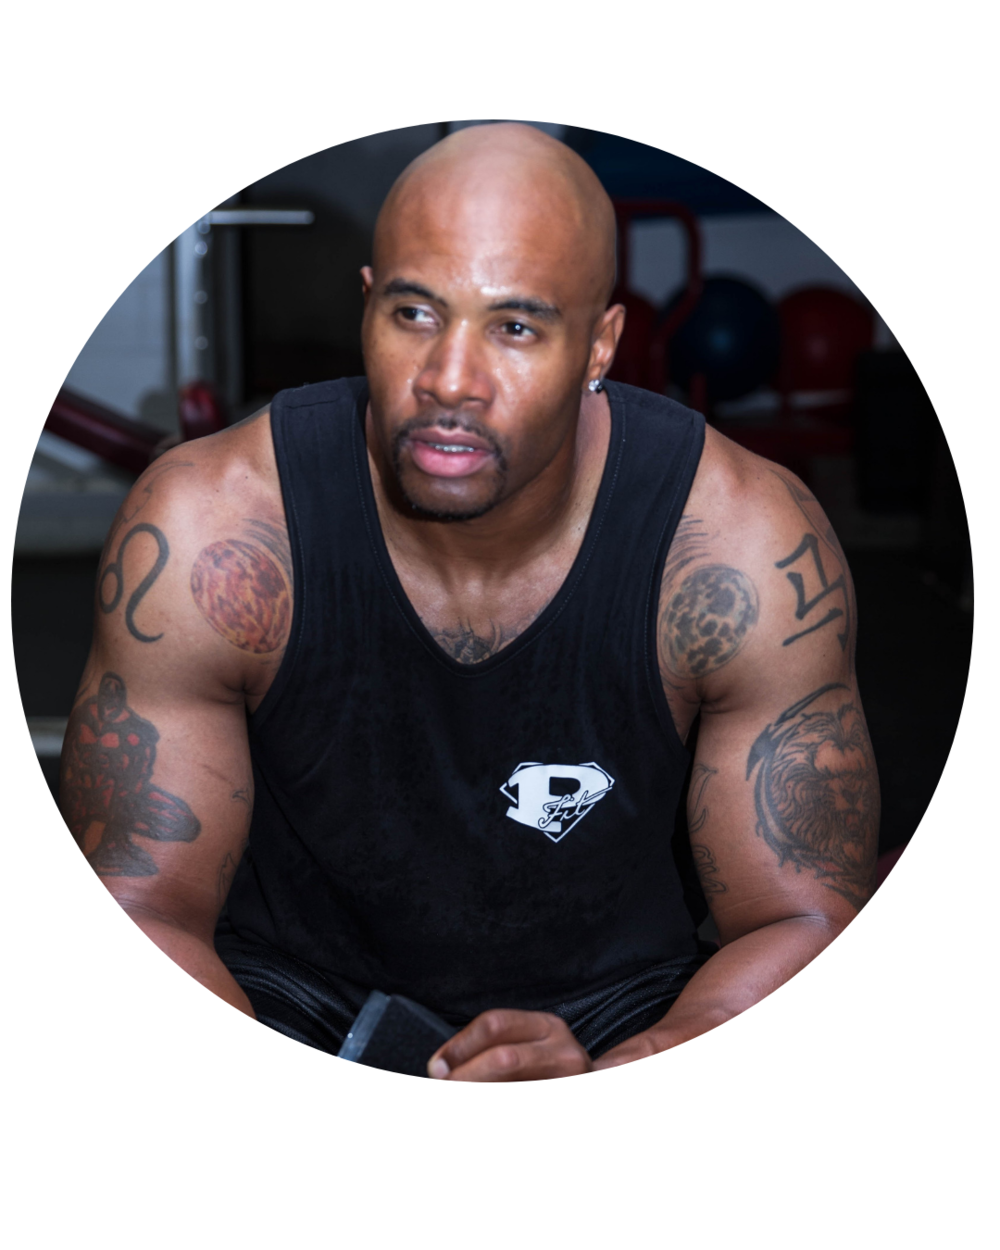 Getting your Mind and Body Right. One Repetition at a Time. - Coach A.J. - CSAC, CPT